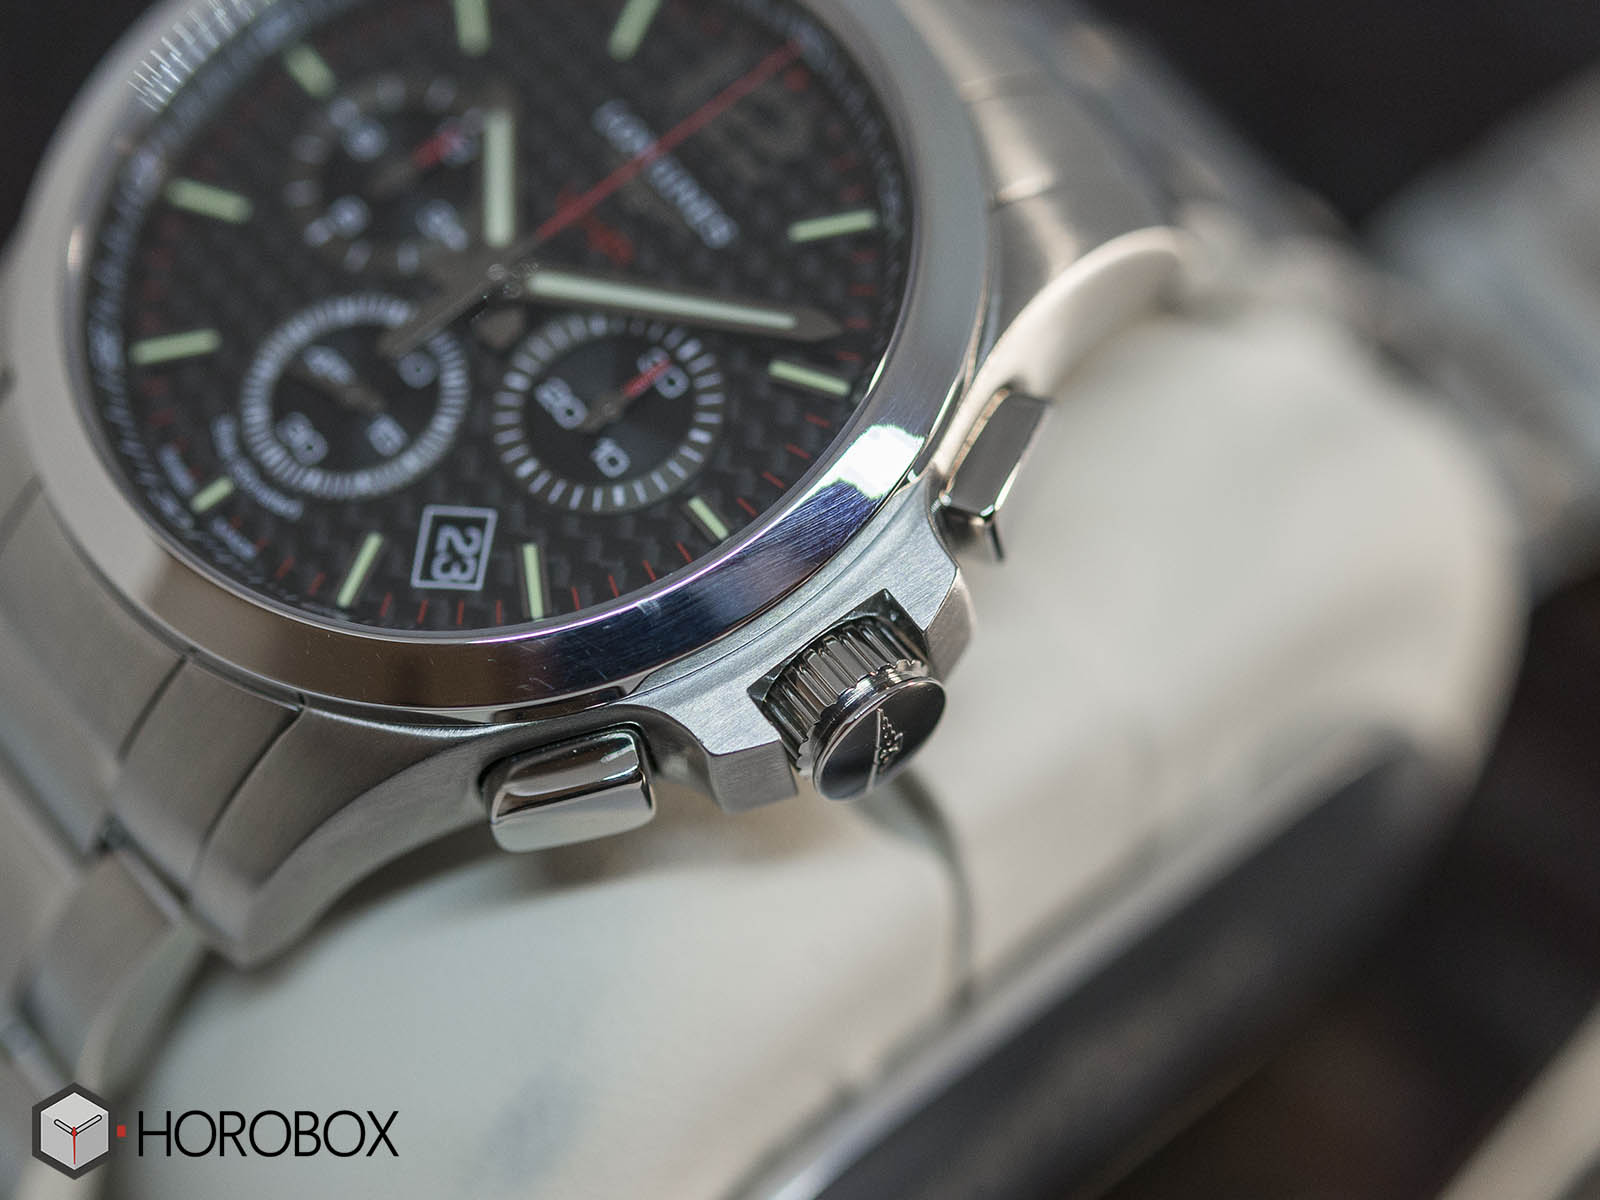 l3-727-4-66-6-longines-conquest-vhp-chronograph-4.jpg